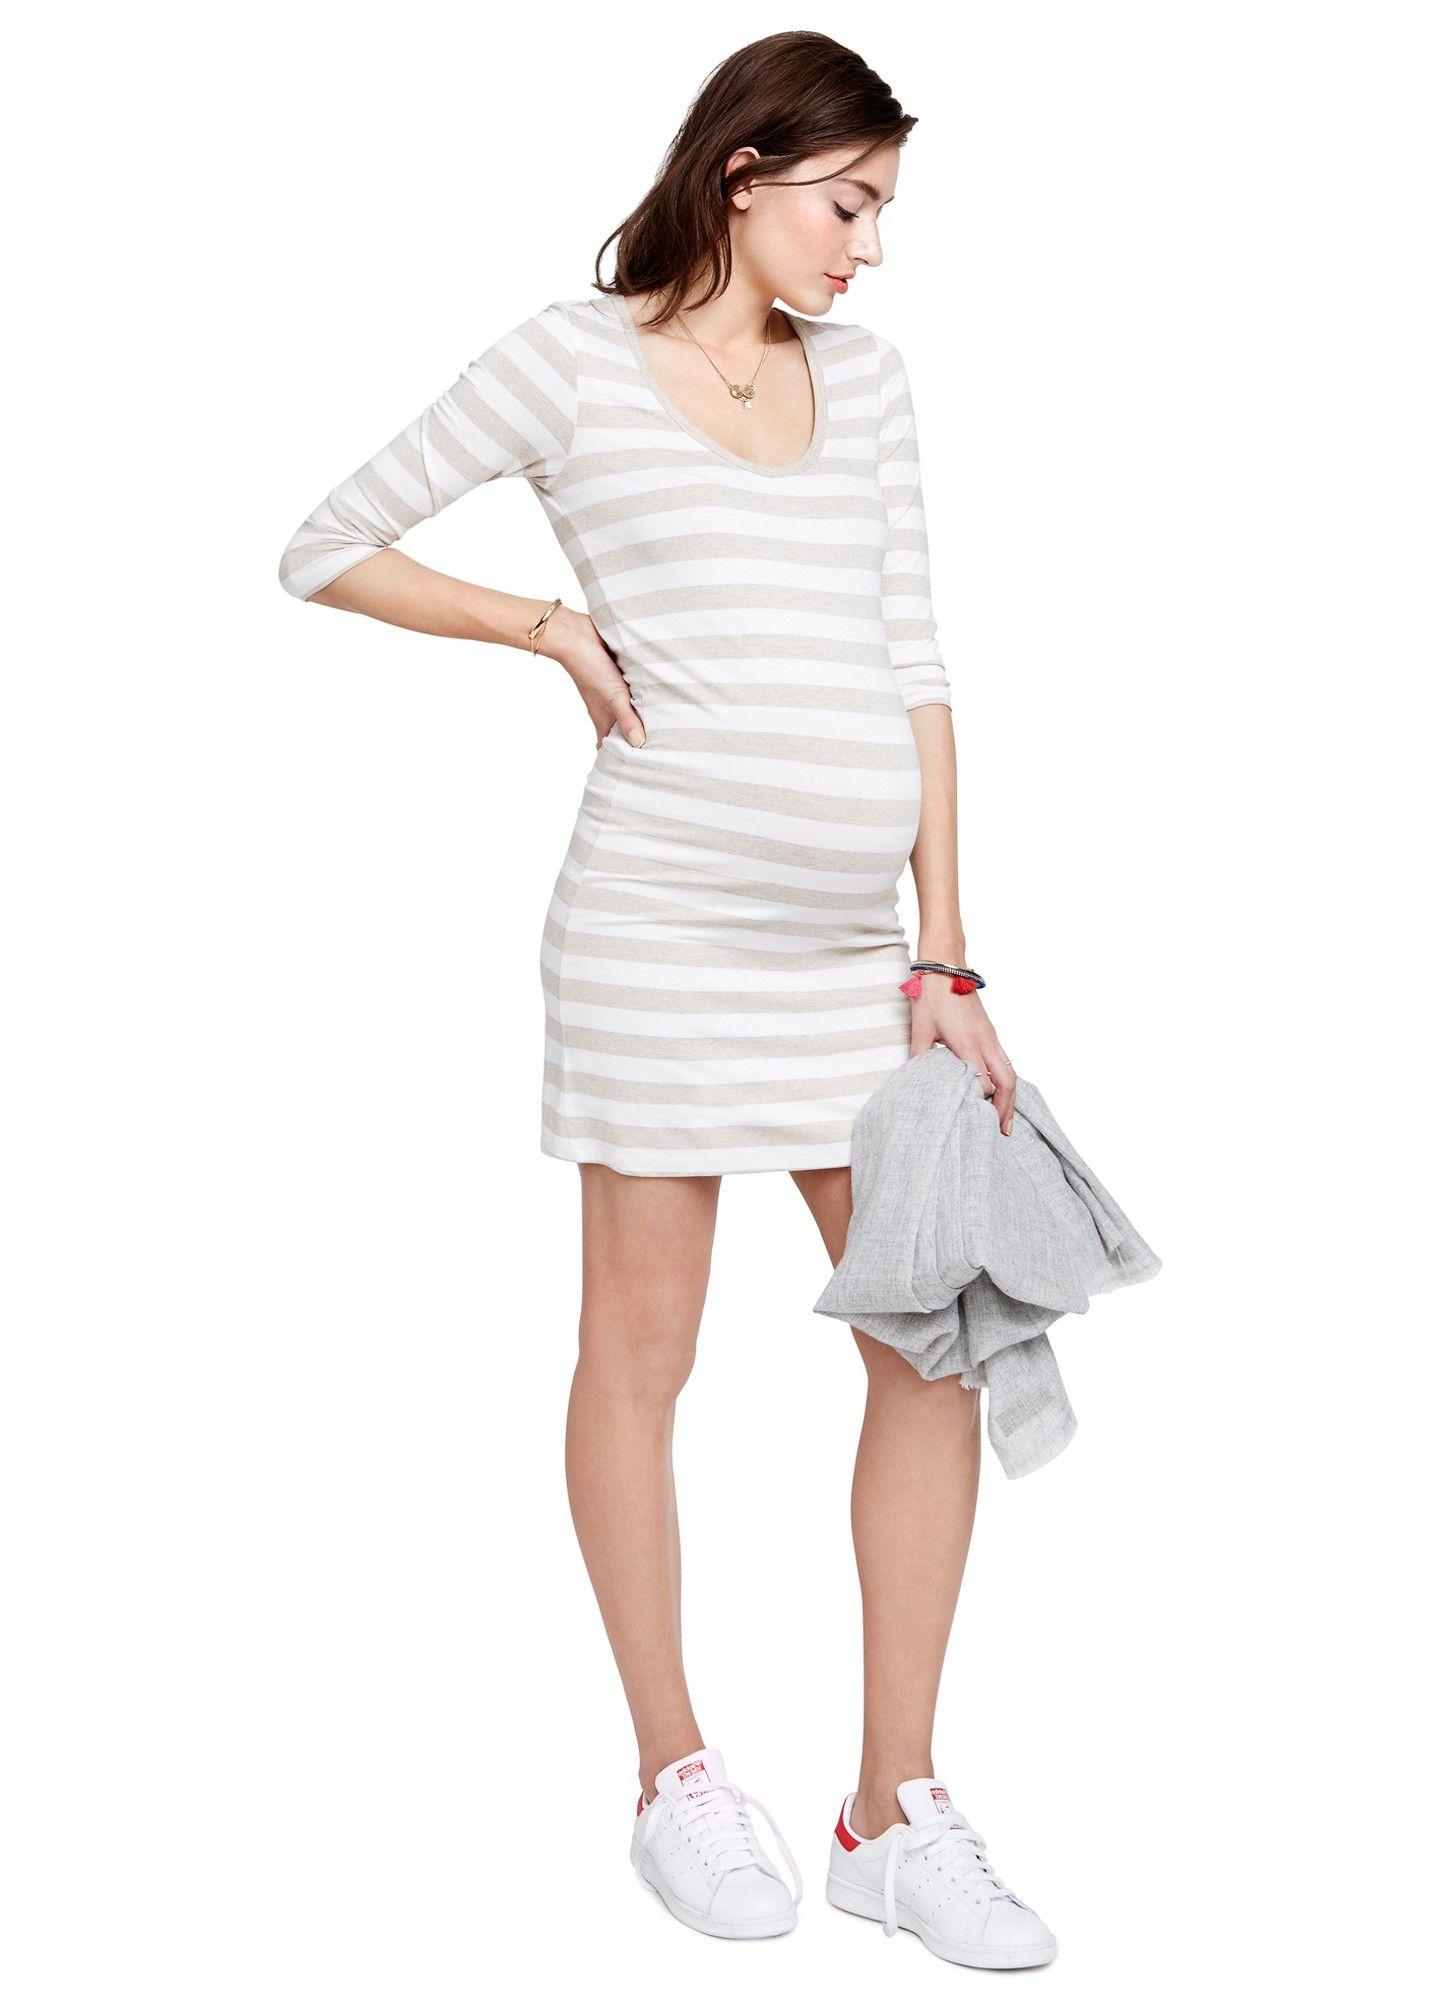 Stylish maternity dresses new photo